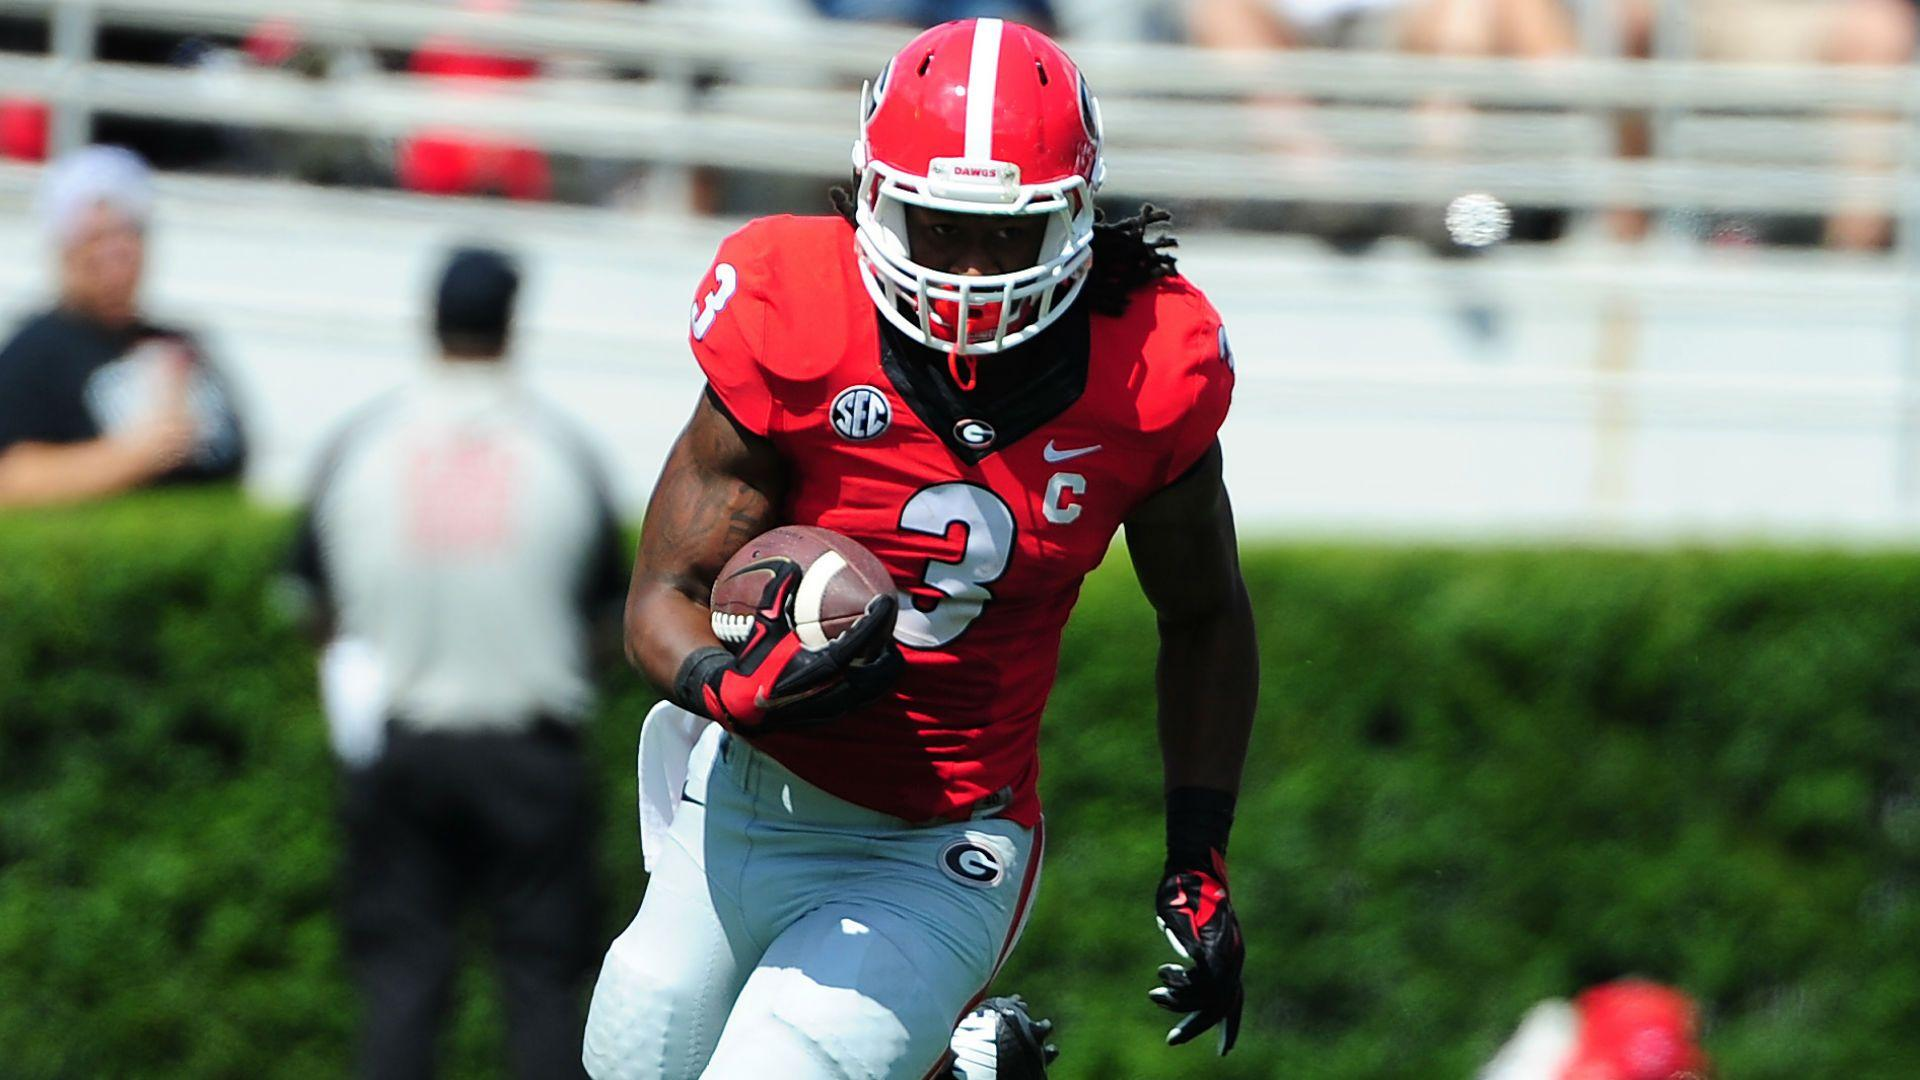 Report: Todd Gurley not traveling with team to Arkansas